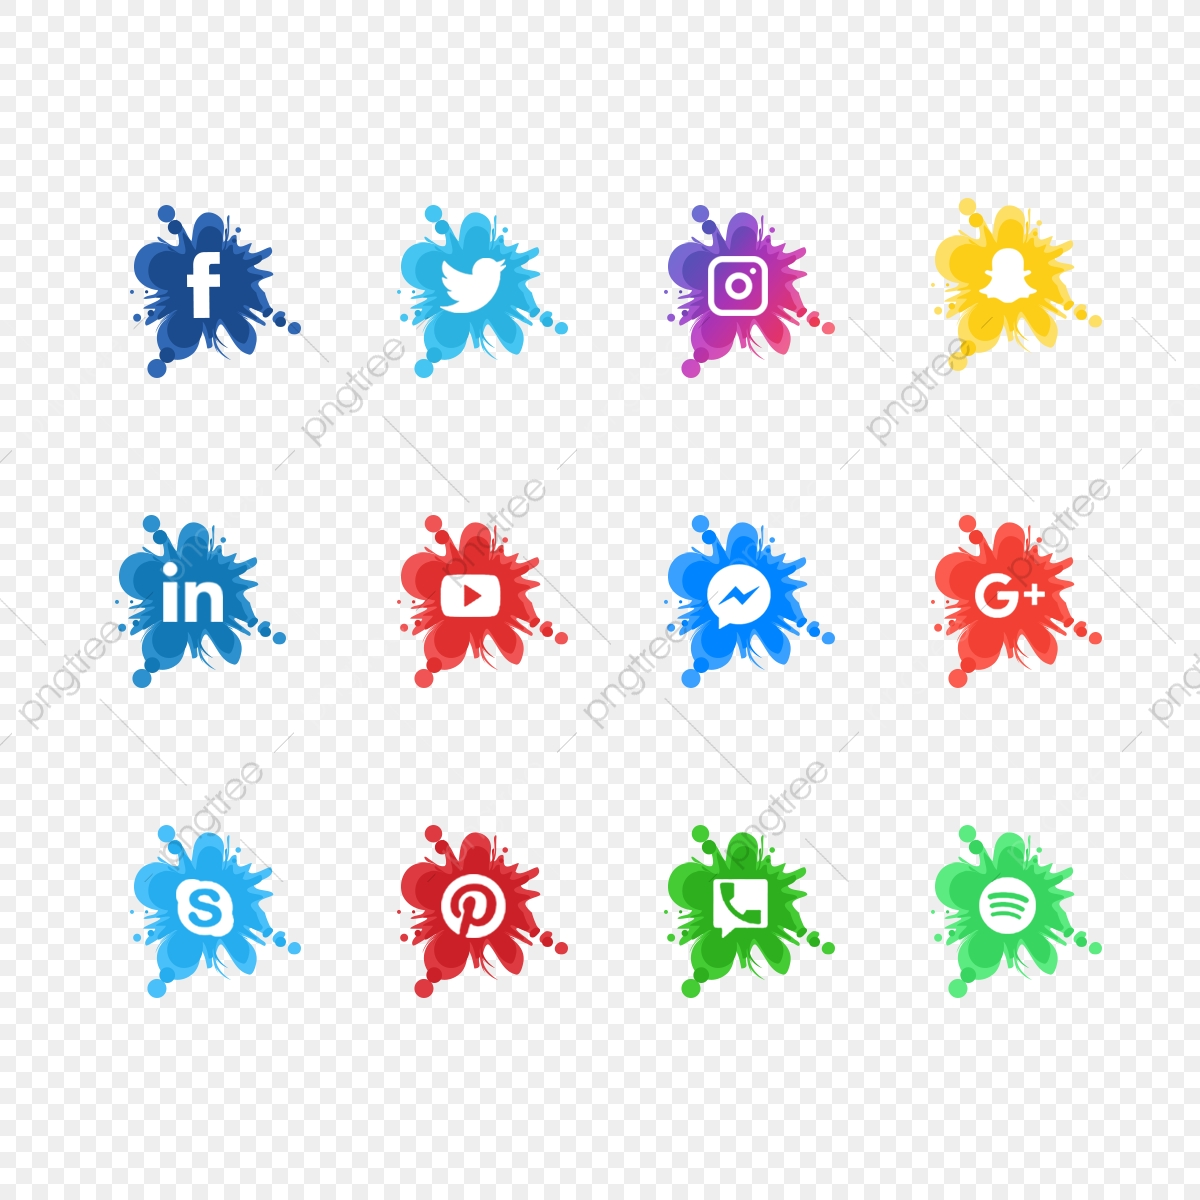 Facebook clipart colorful. Social media icons